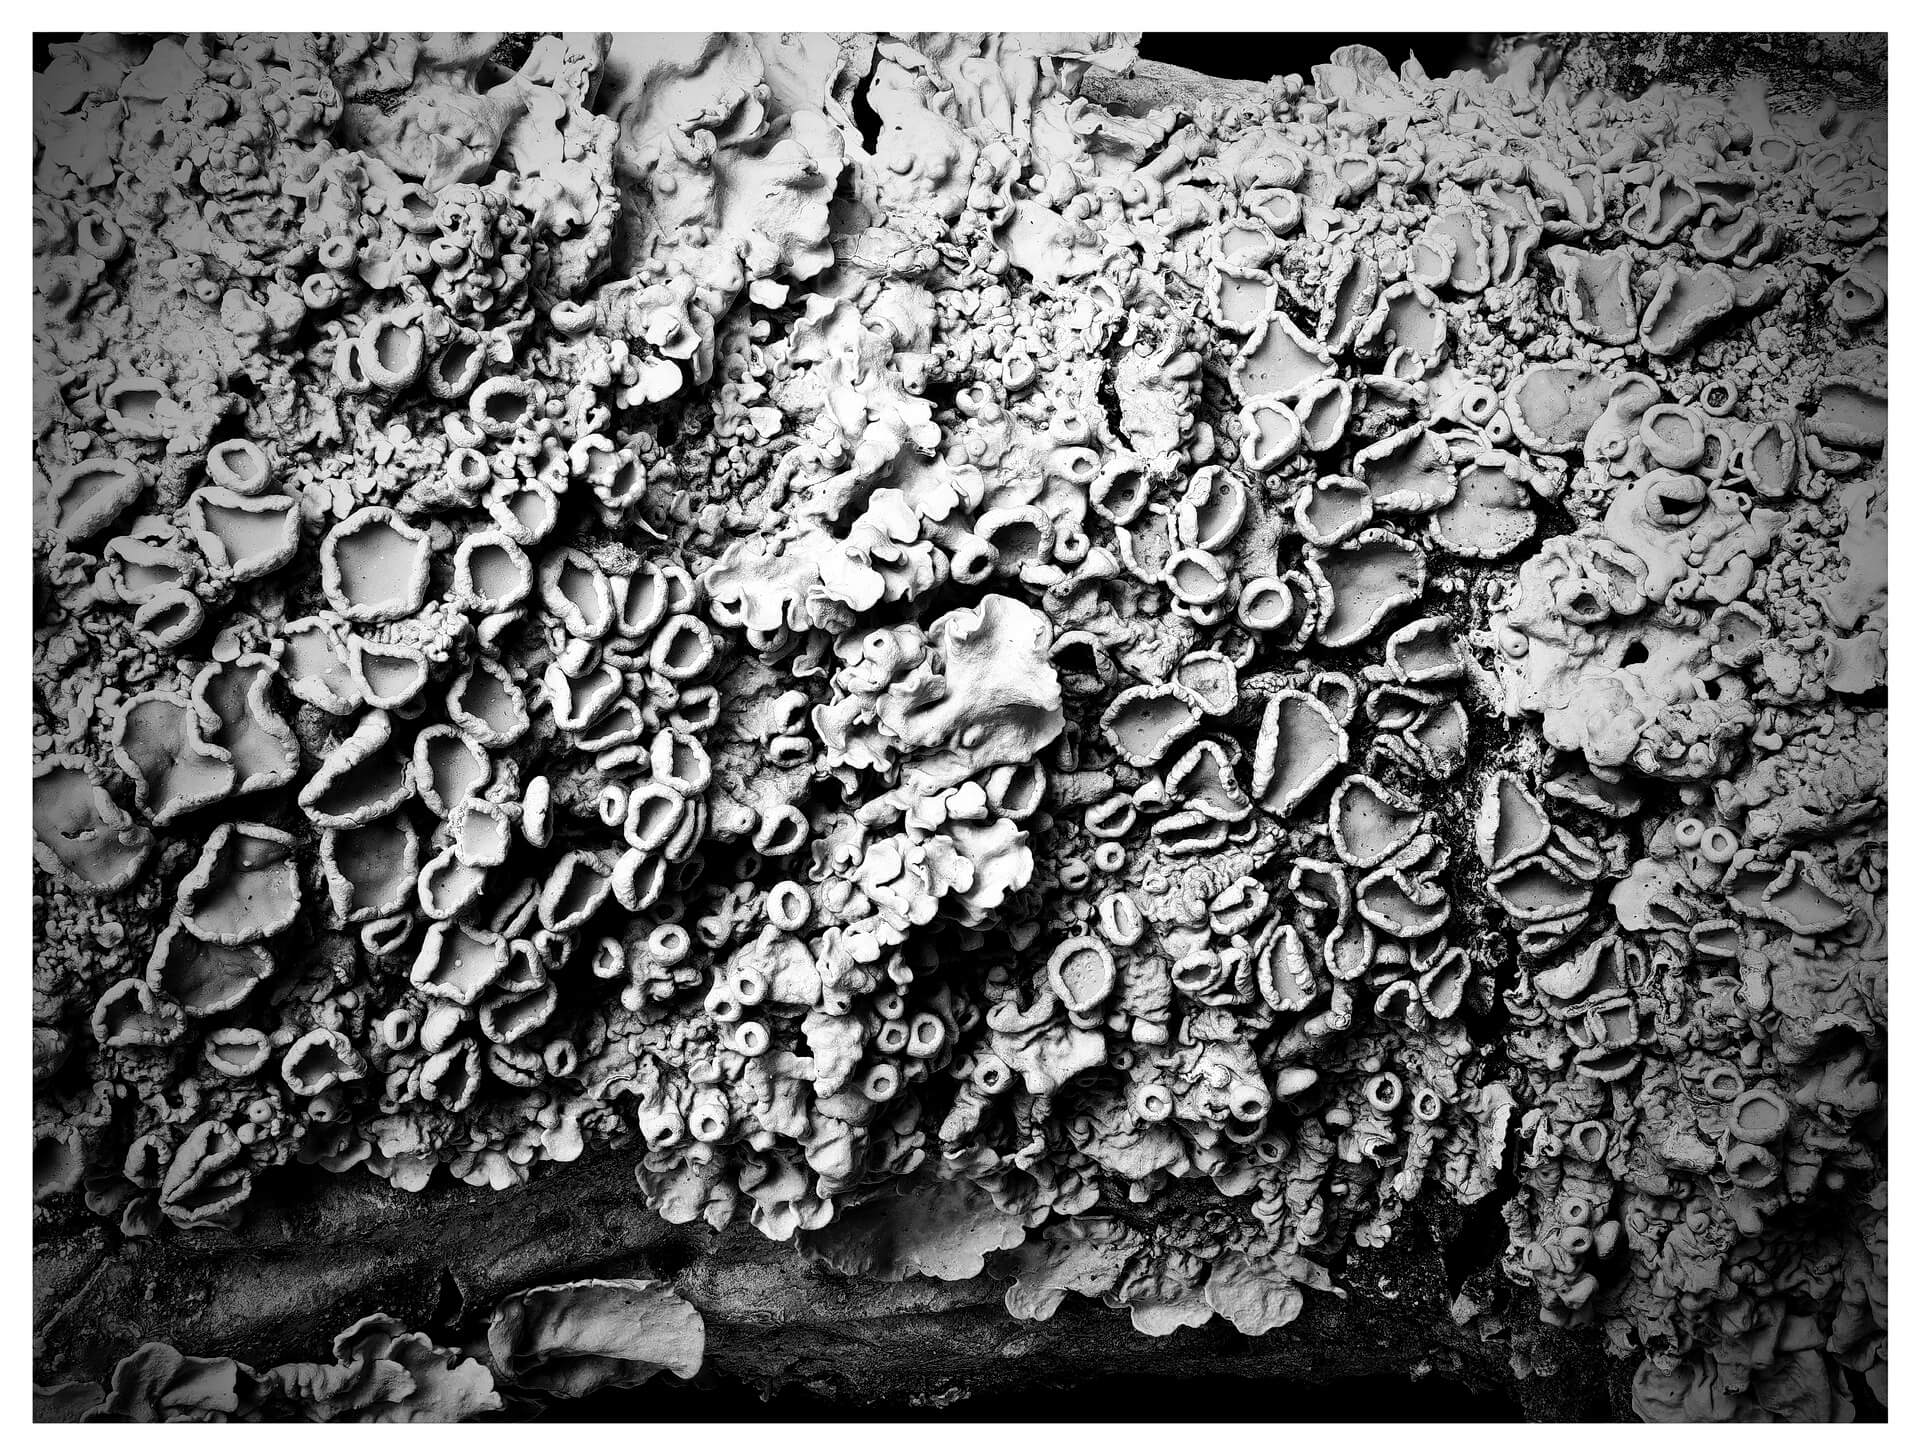 Maritime Sunburst Lichen (black and white)